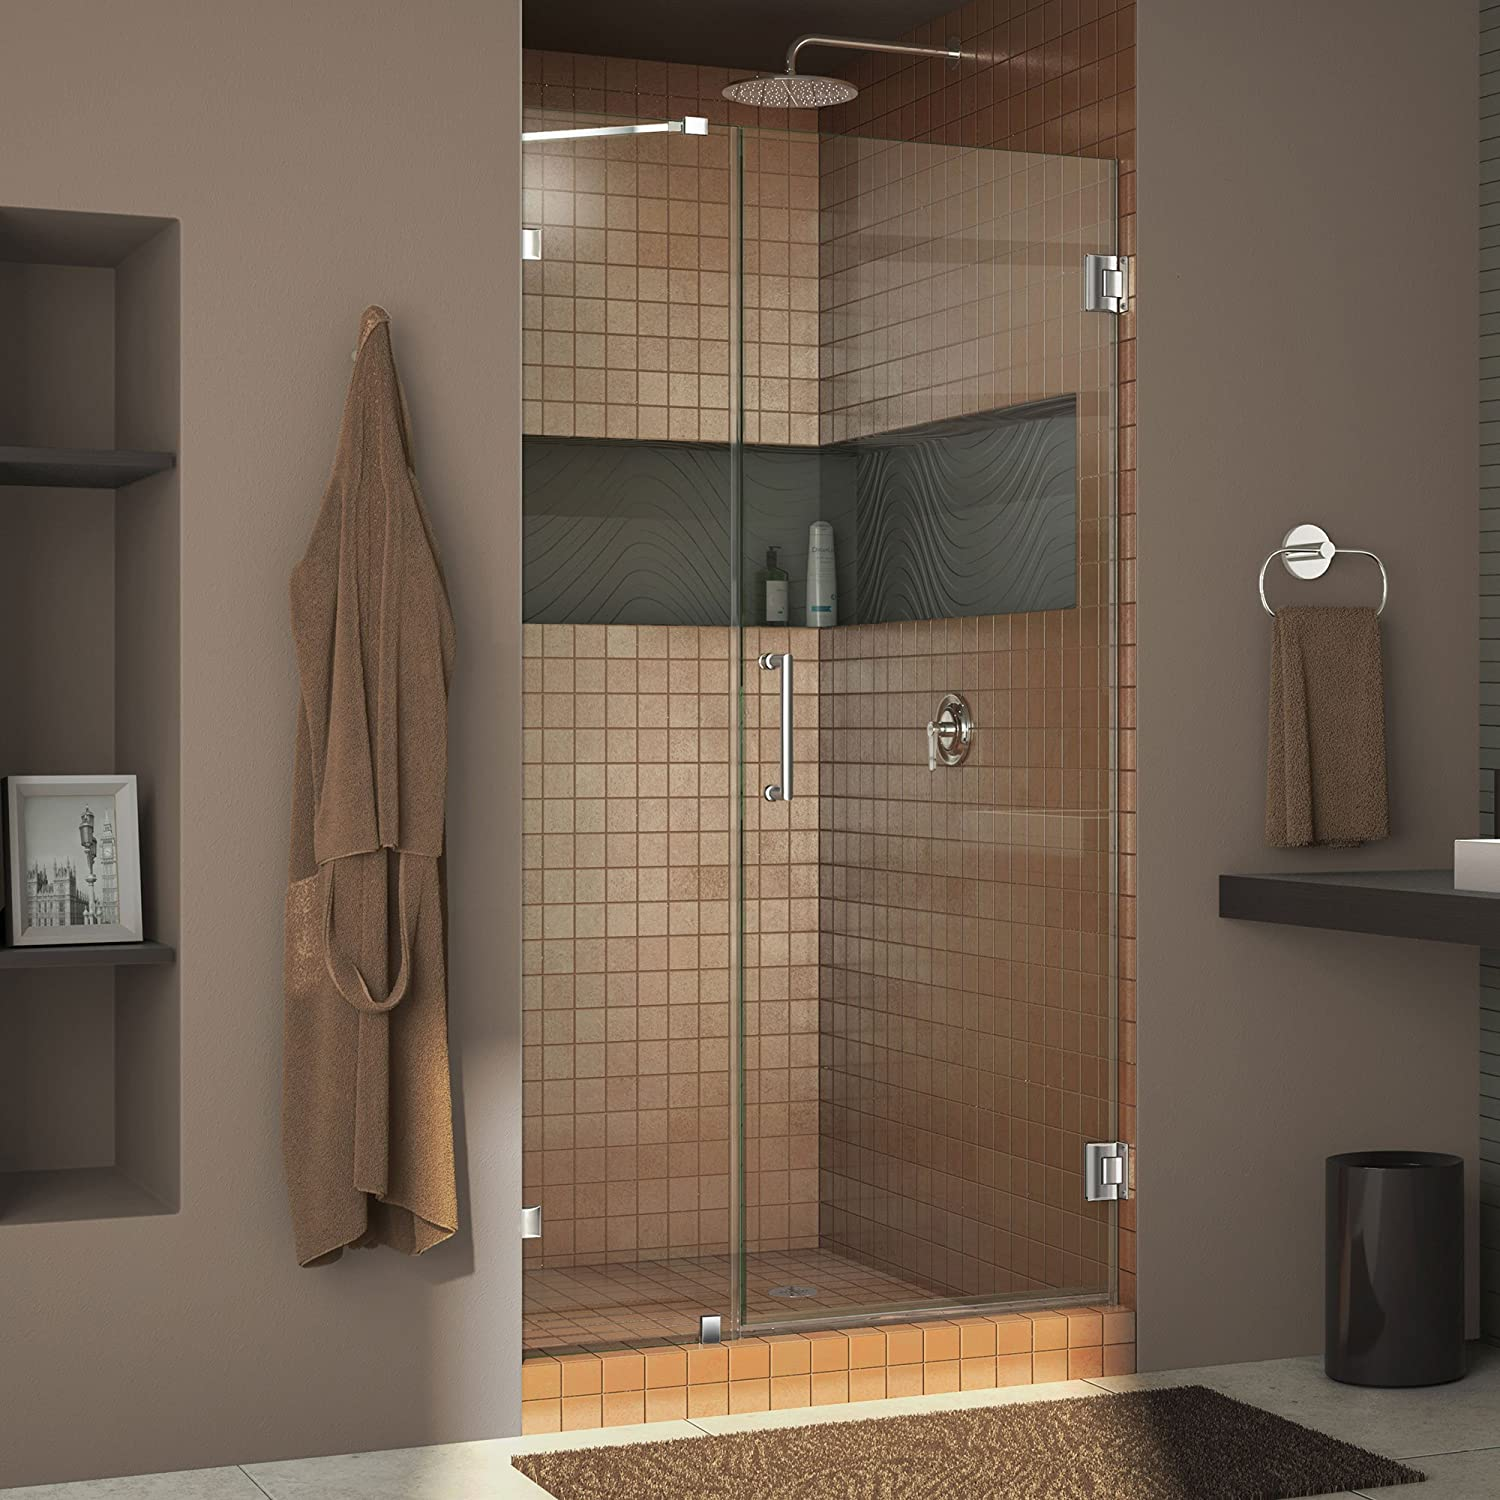 DreamLine Unidoor Lux 40 in. W x 72 in. H Fully Frameless Hinged Shower Door with Support Arm in Chrome, SHDR-23407210-01